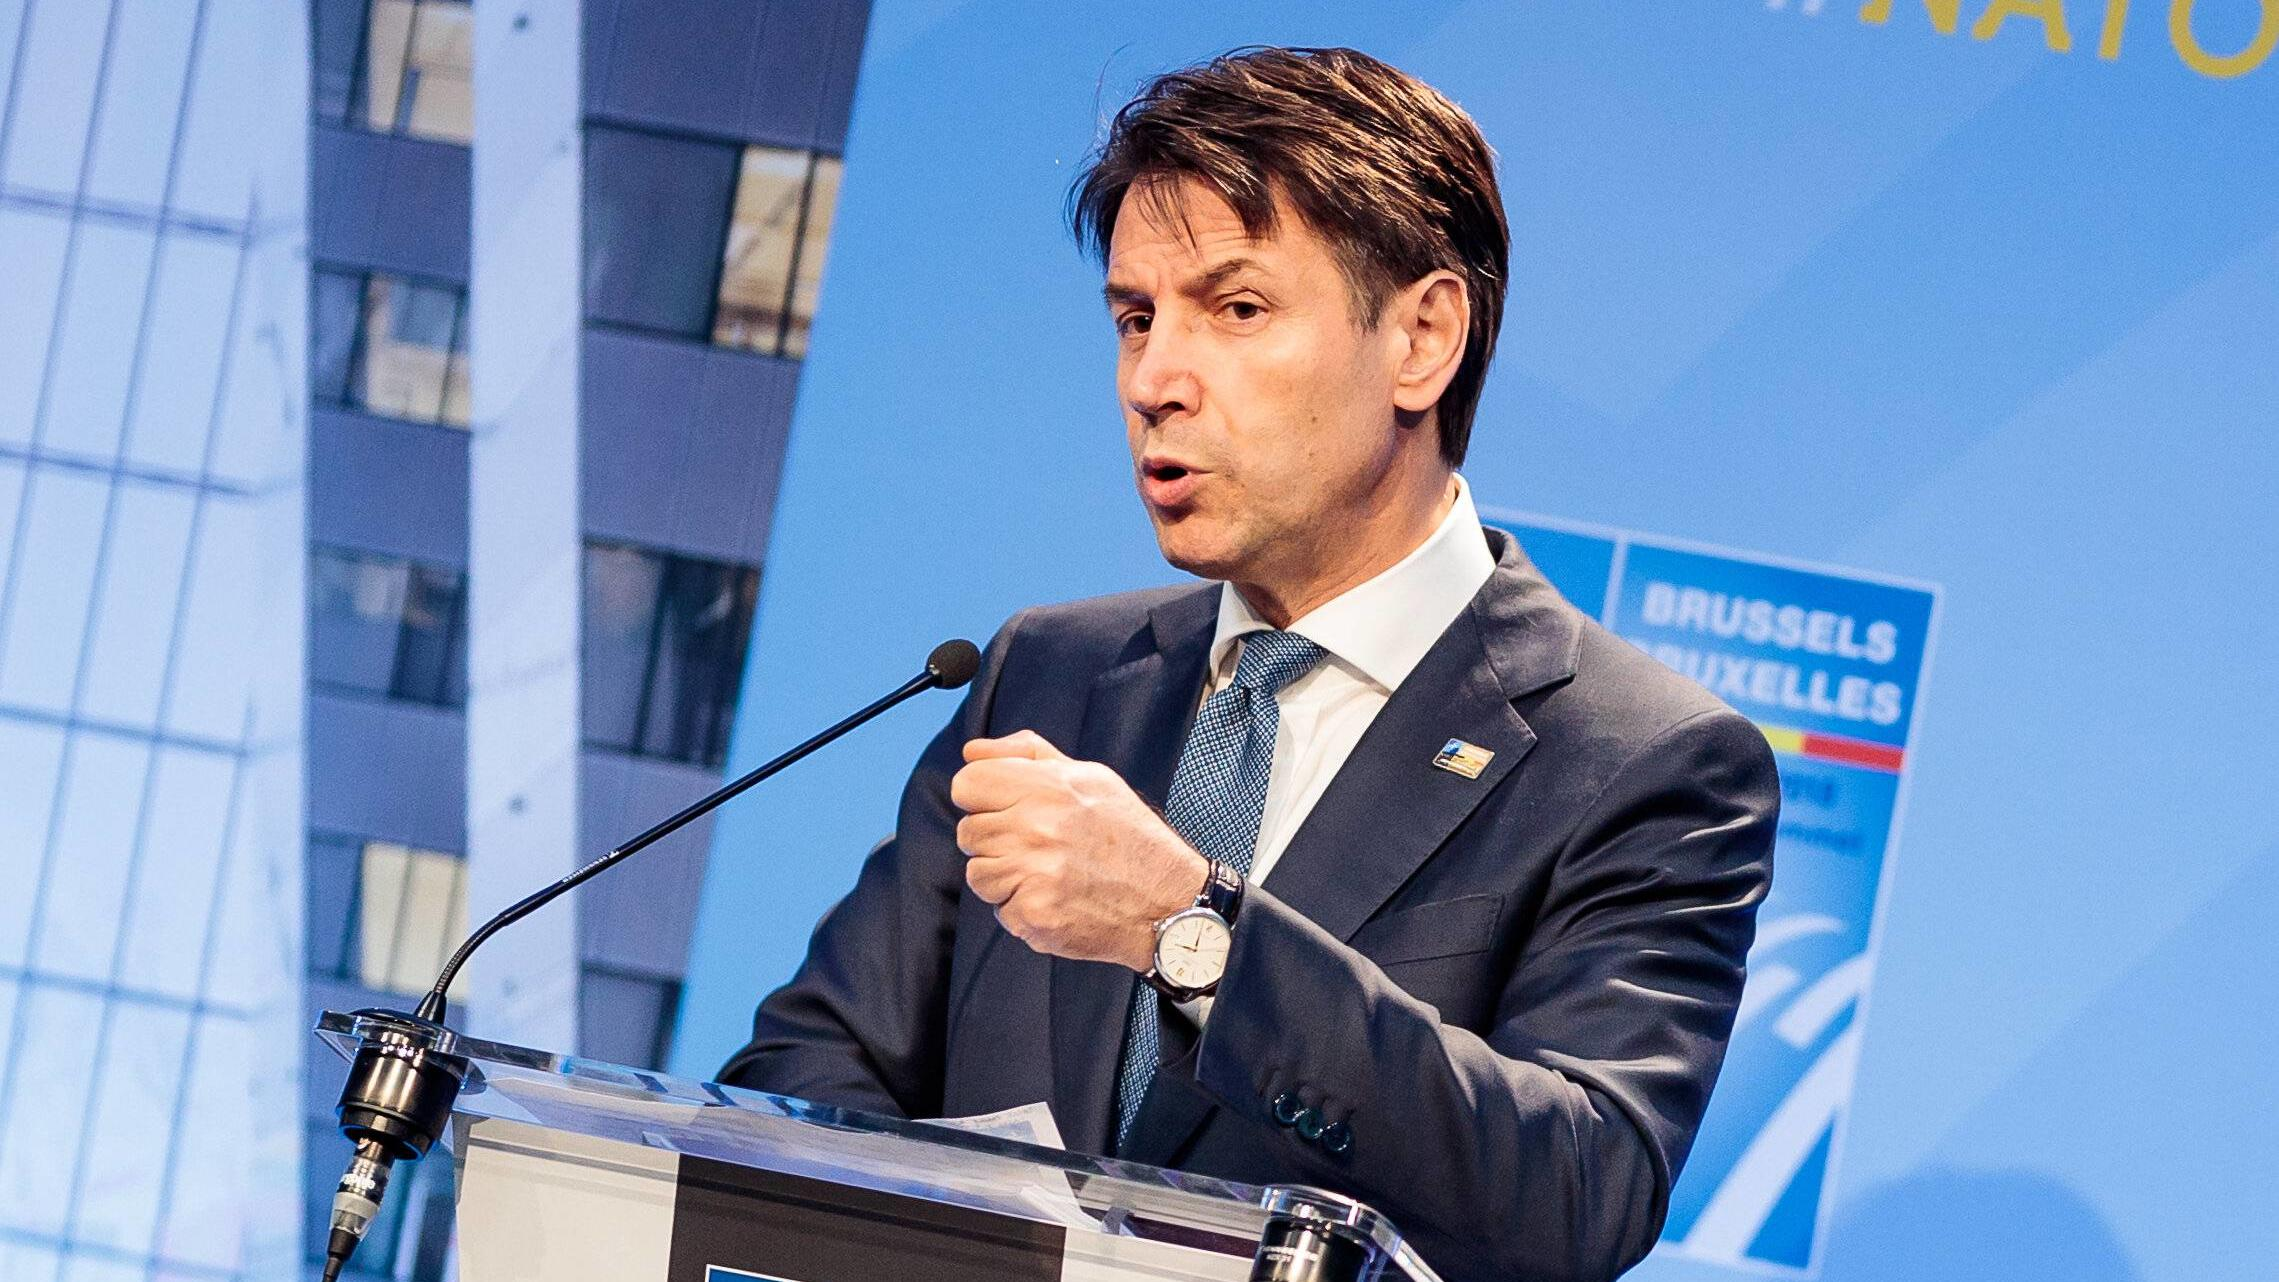 Bruessel 12.07.2017, Bruessel, BEL, NATO Gipfel 2018, Pressekonferenz Italien, im Bild Giuseppe Conte (Premierminister Italien) // Prime Minister of Italy Giuseppe Conte during press conference of Italy at the 2018 NATO Summit. Brussels, Belgium 2018